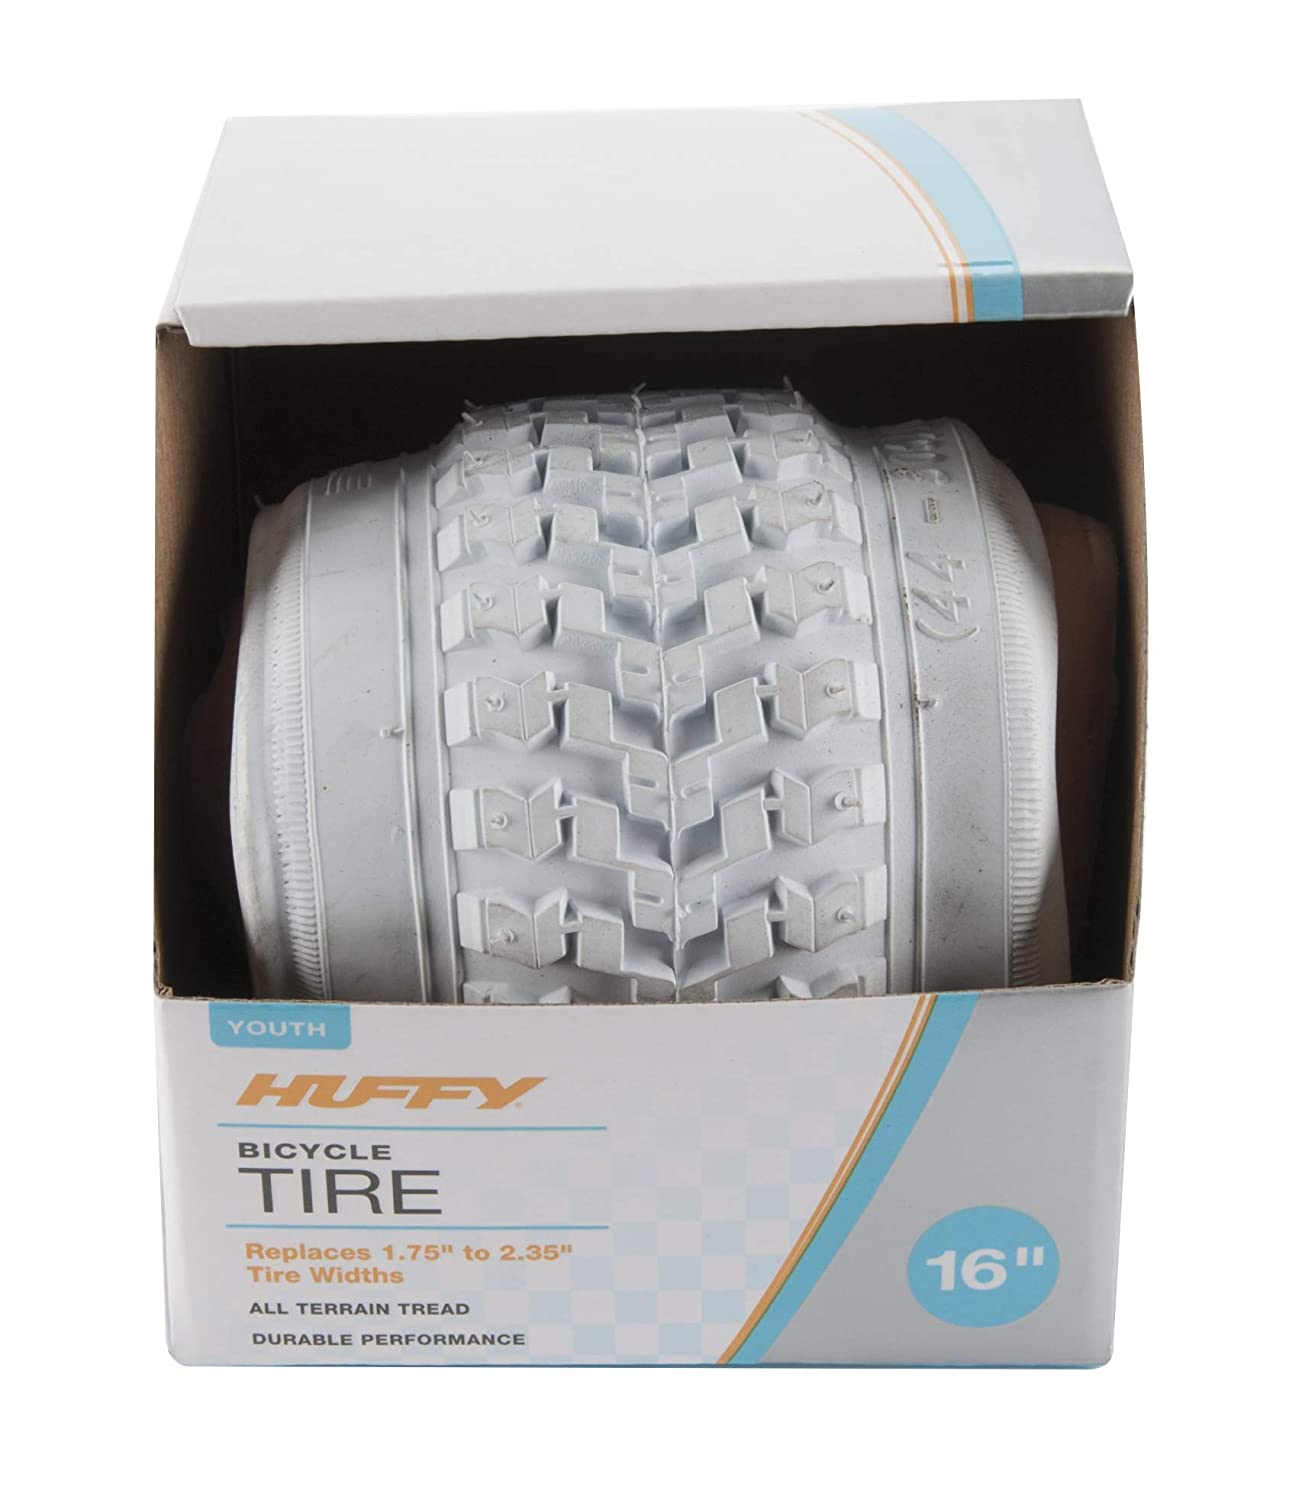 Huffy Bike Tire Replacement 16 20 24 26 27.5 29 White /& Black